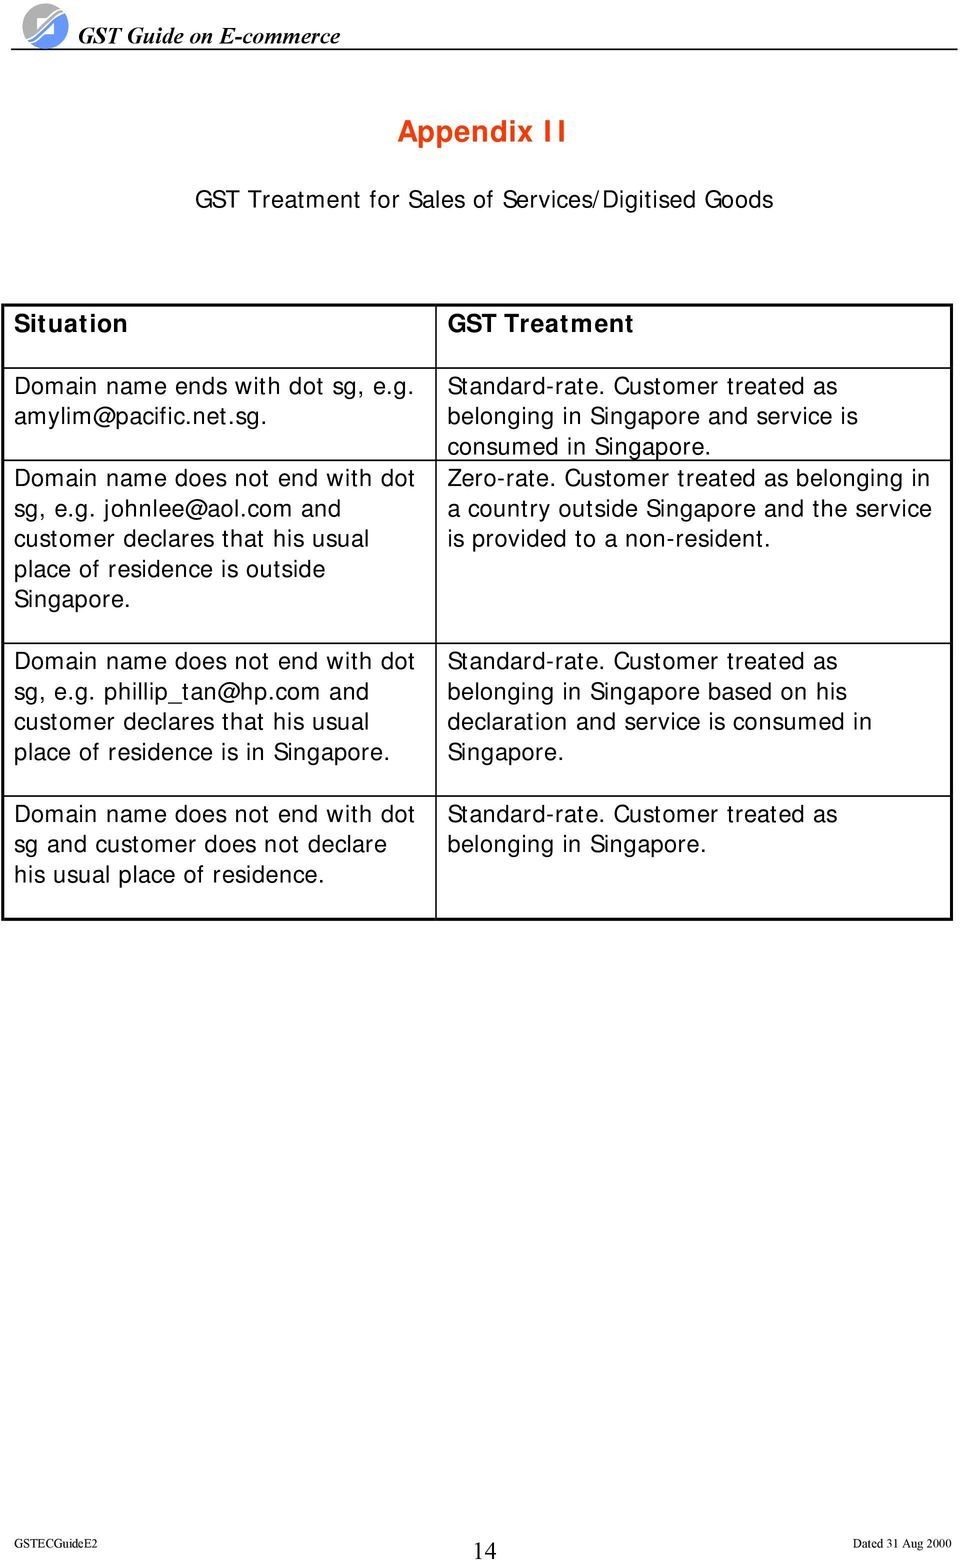 com and customer declares that his usual place of residence is in Singapore. Domain name does not end with dot sg and customer does not declare his usual place of residence.